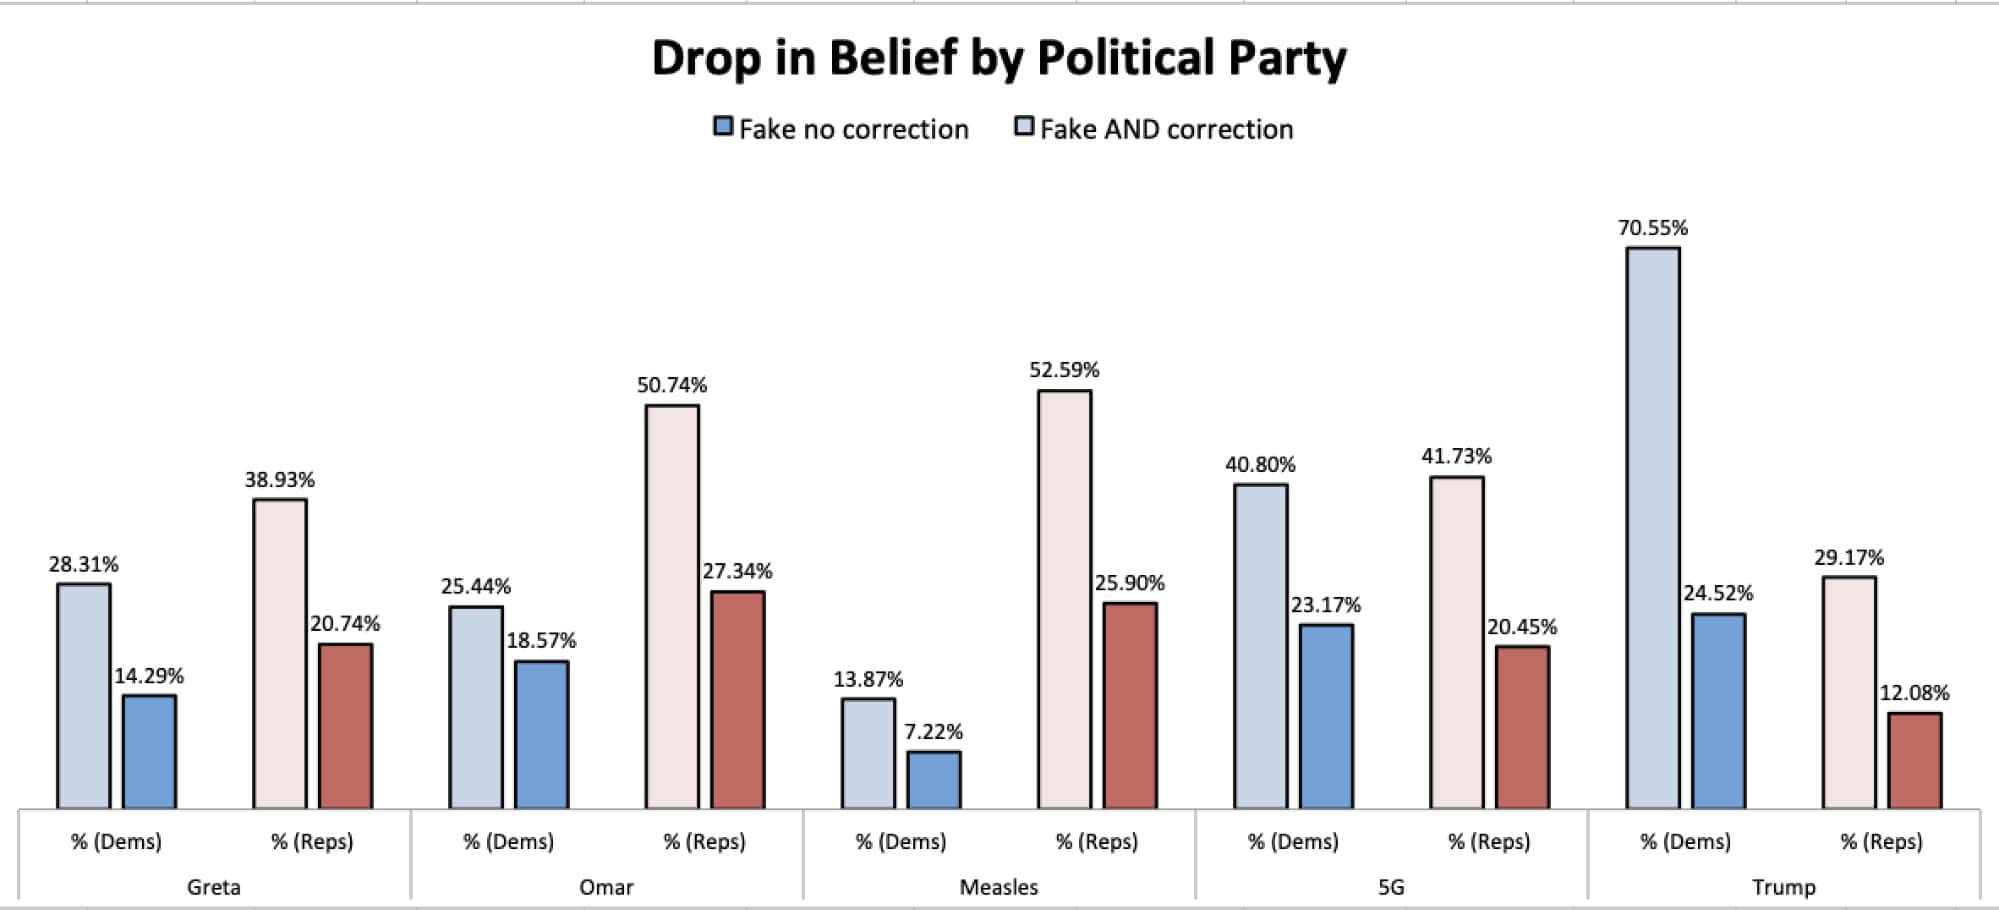 Drop in Belief by Political Party